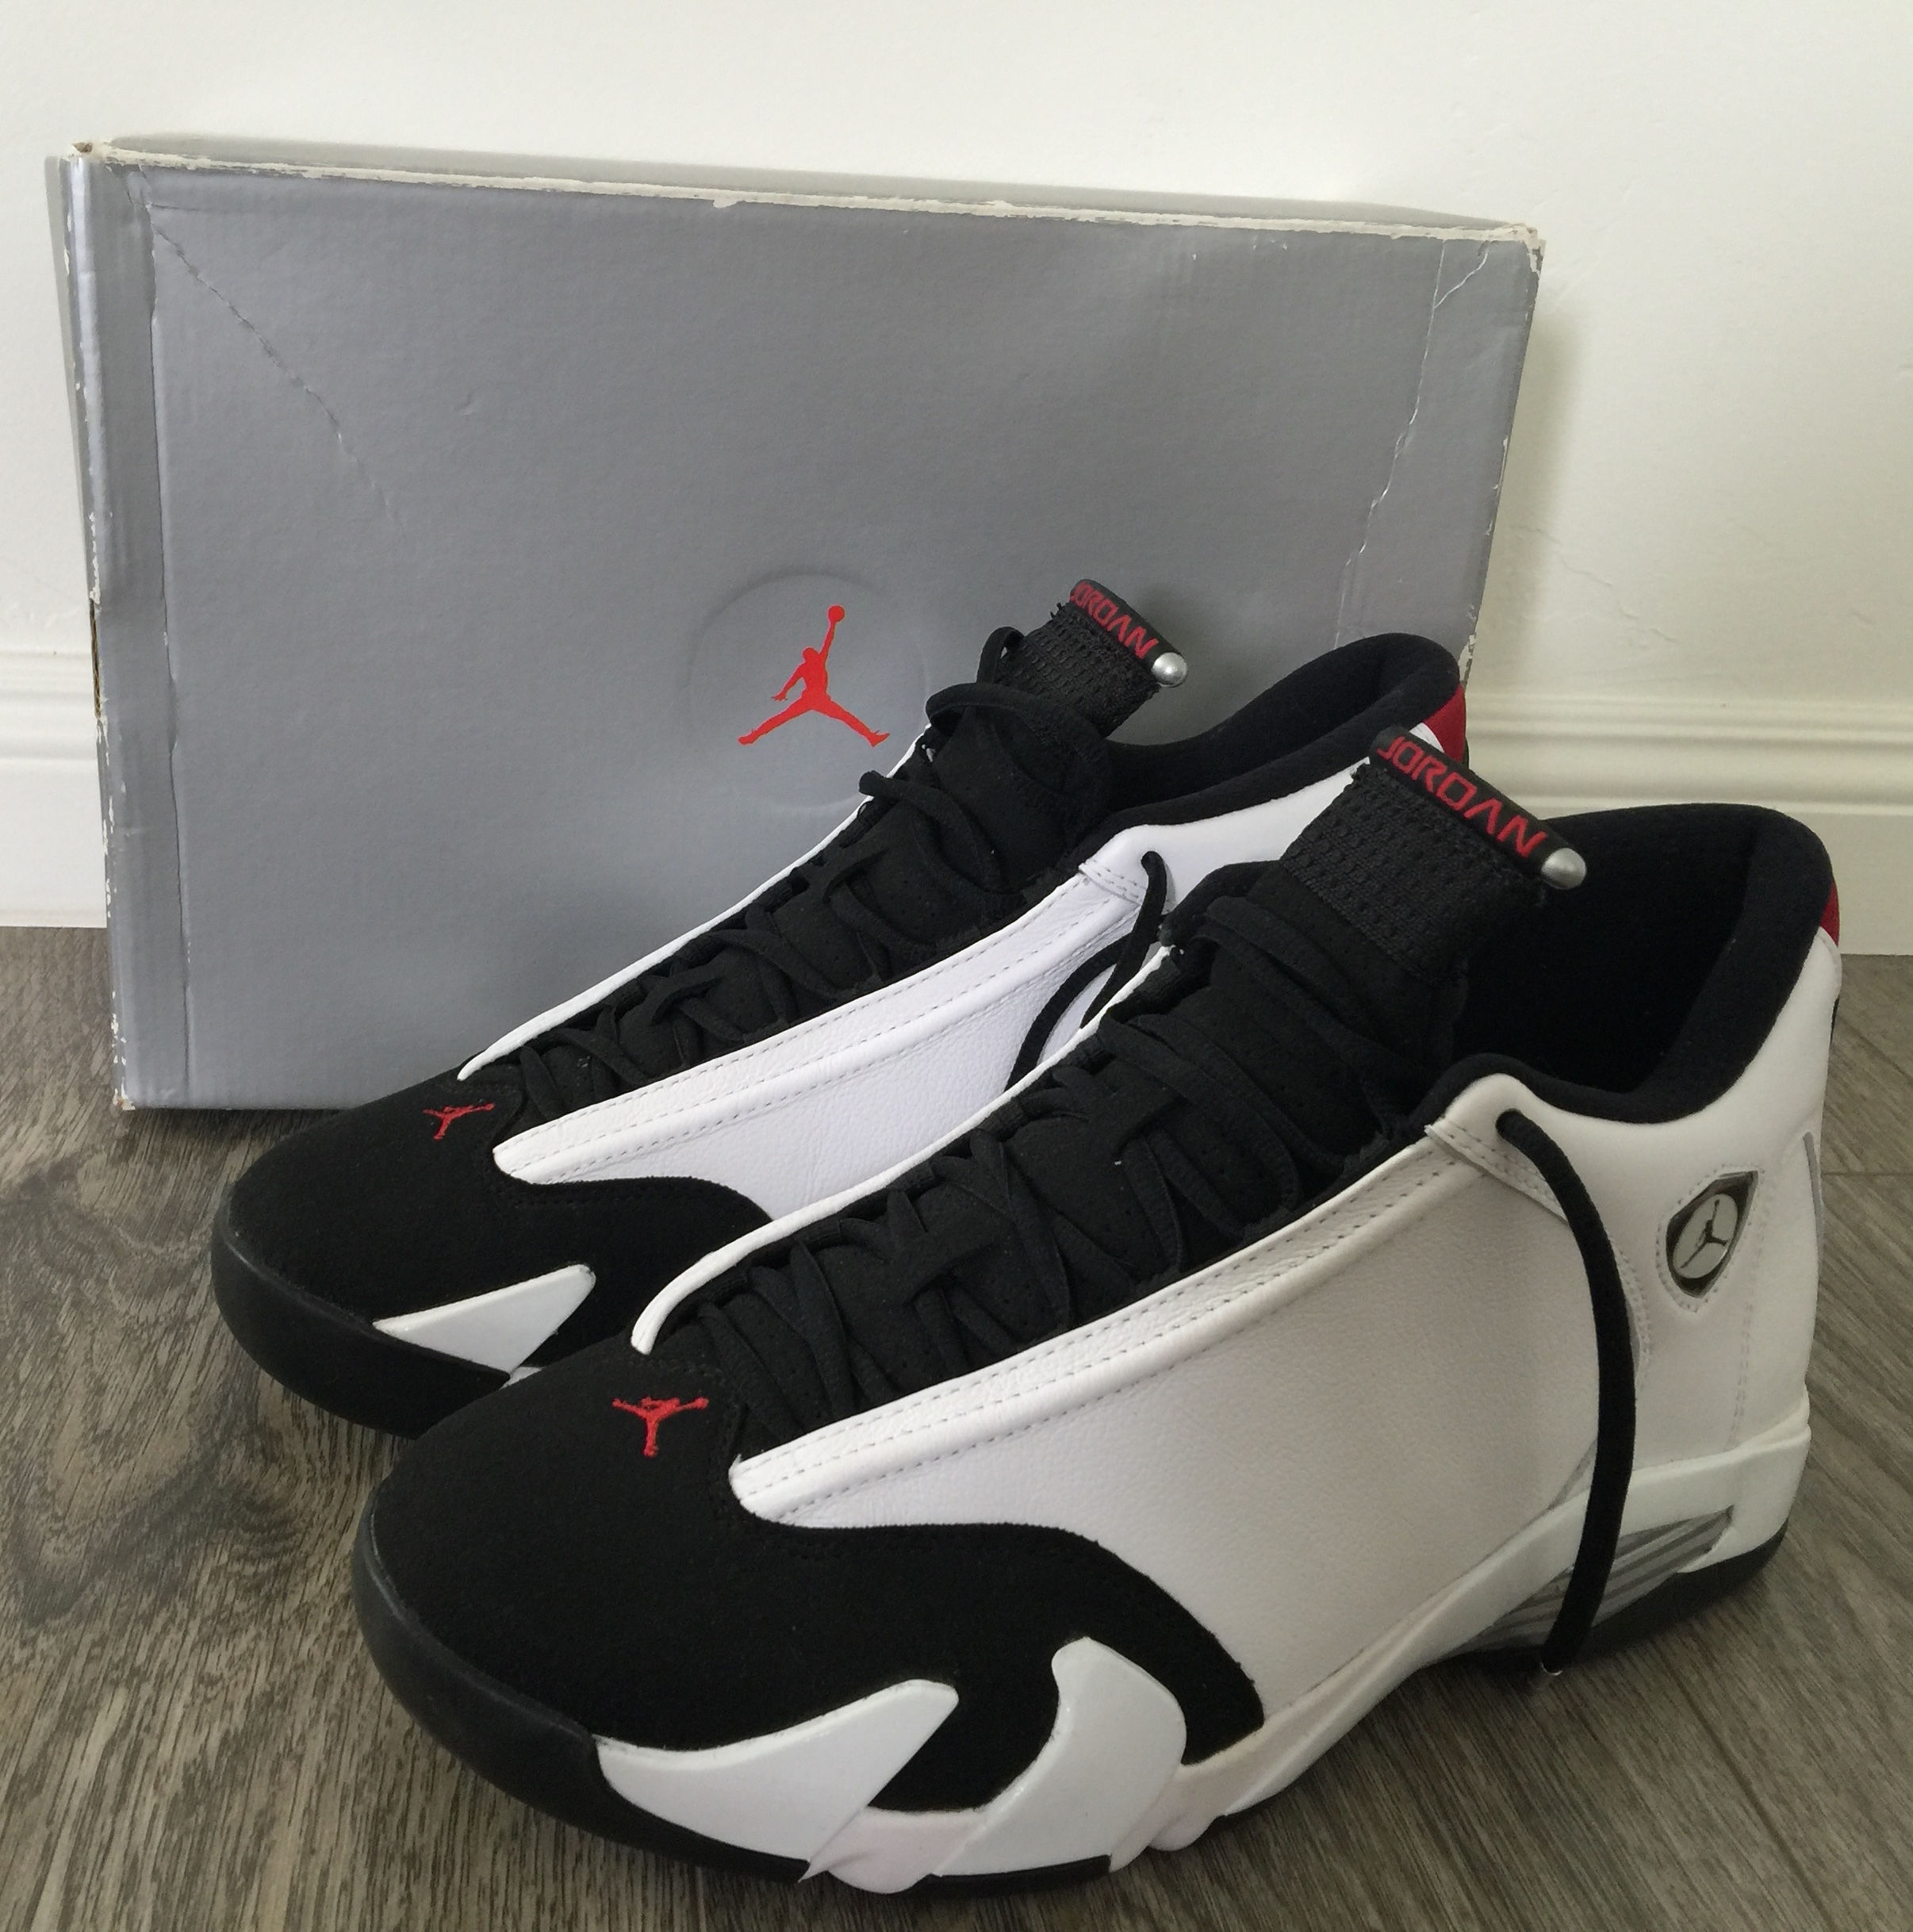 Nike Air Jordan Golf Shoes For Sale